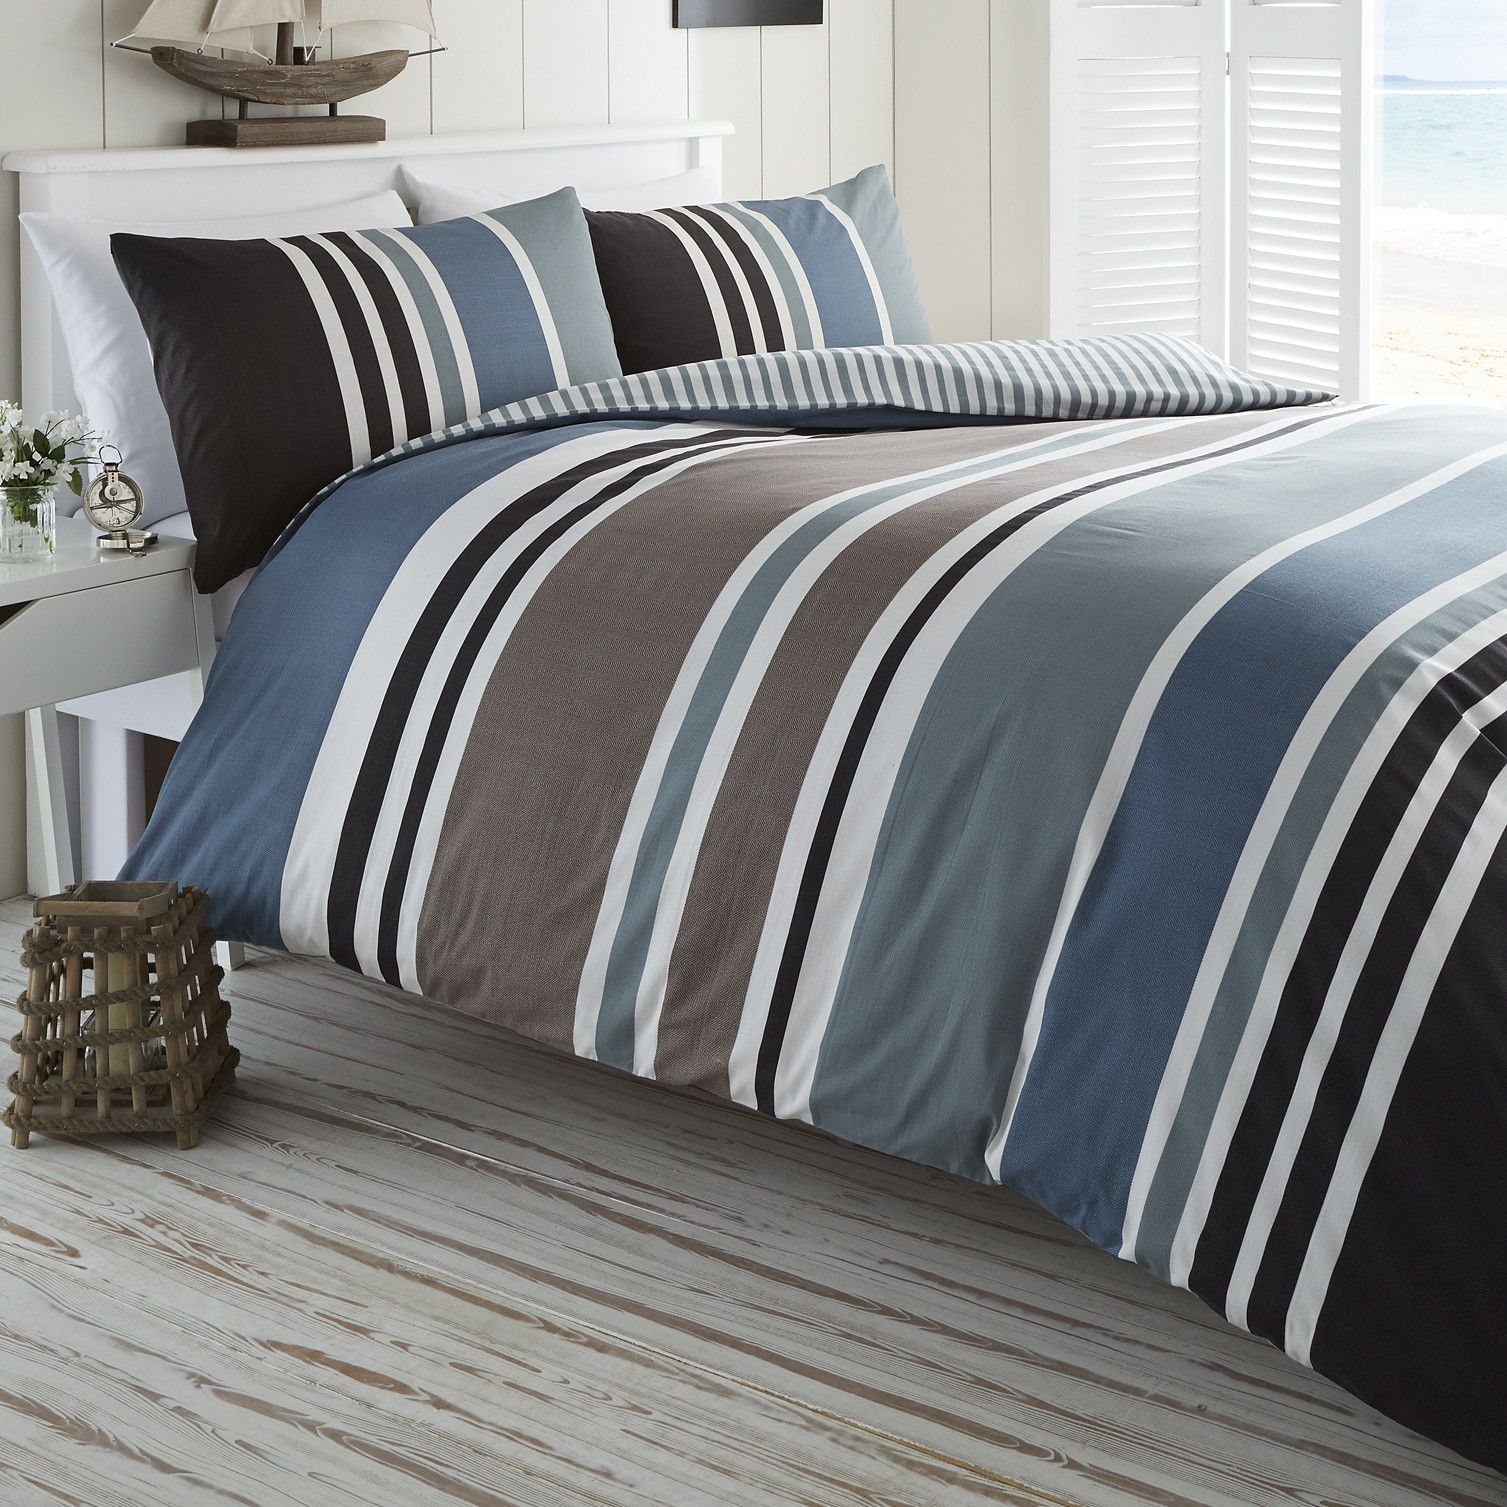 Hokku Designs Laguna Duvet Set Wayfair UK Bedding sets